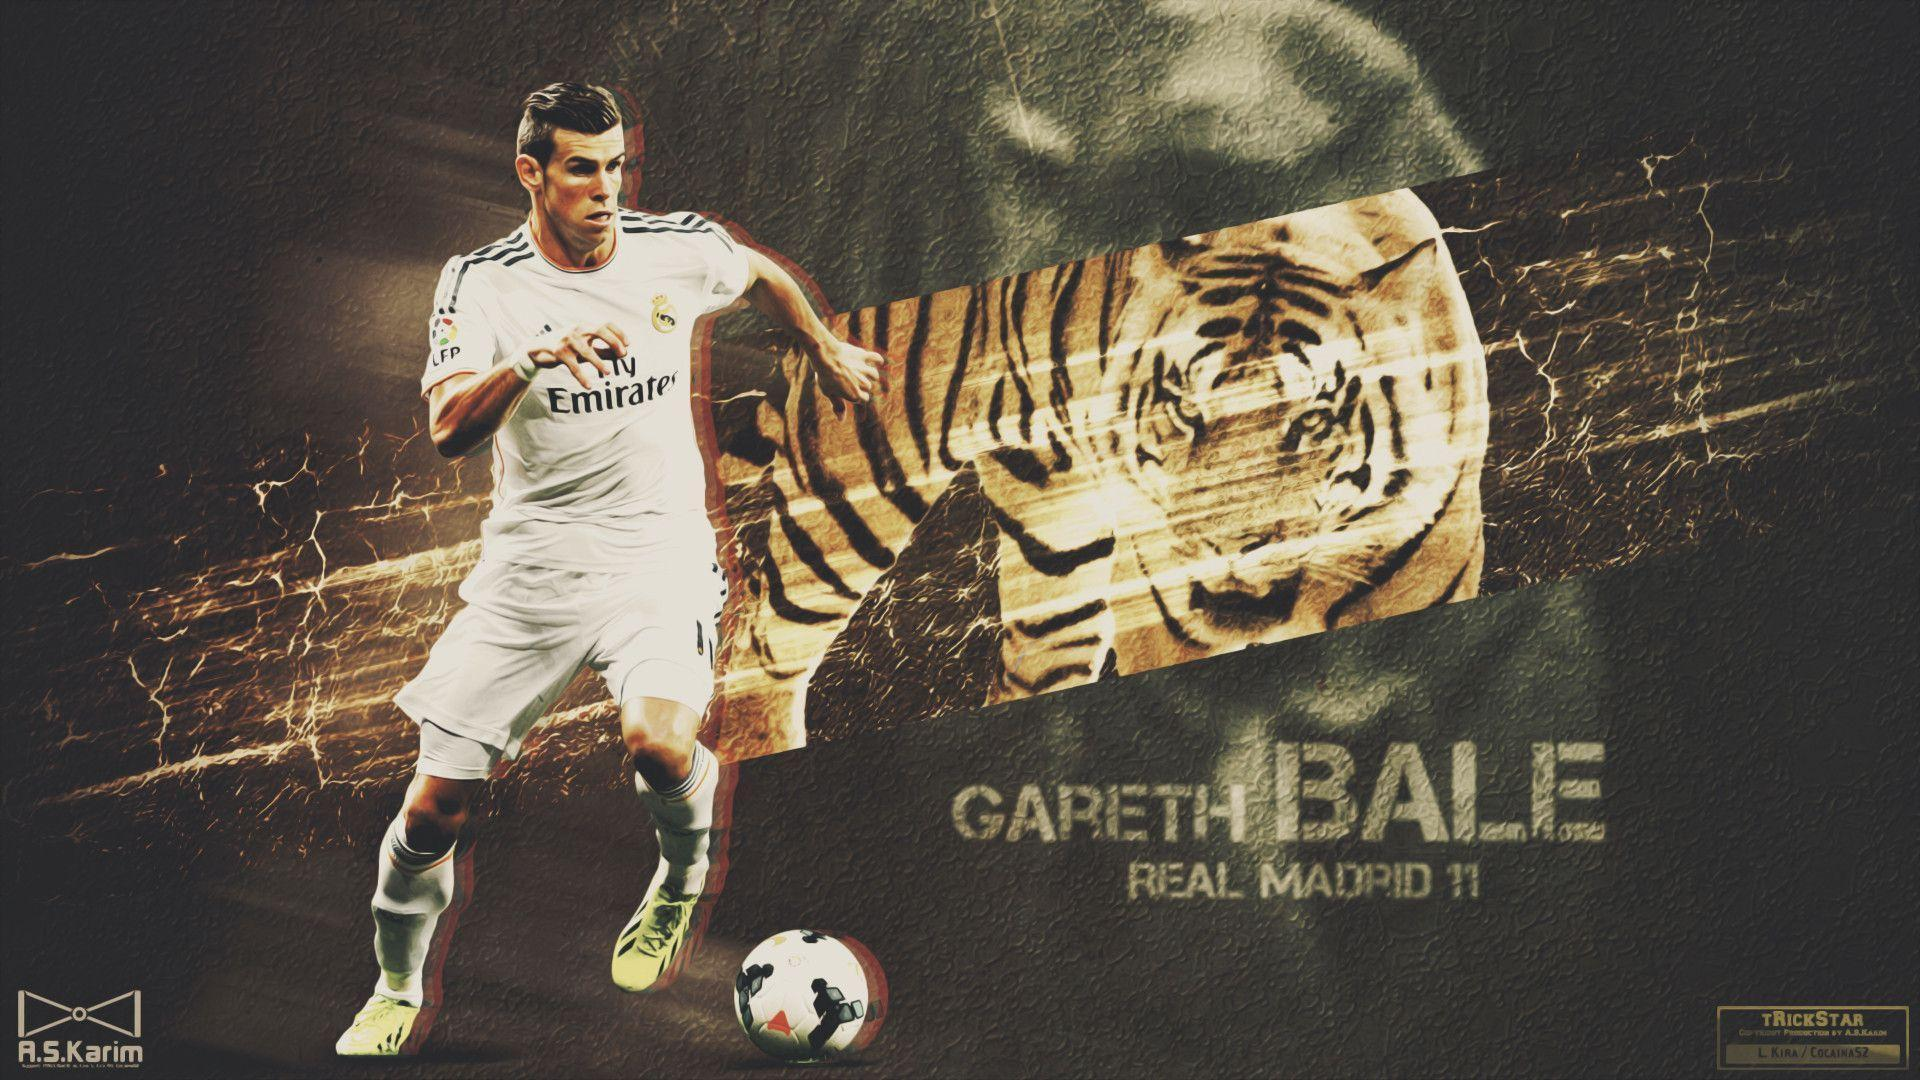 2014 Gareth Bale HD Wallpapers | HD Wallpapers Store